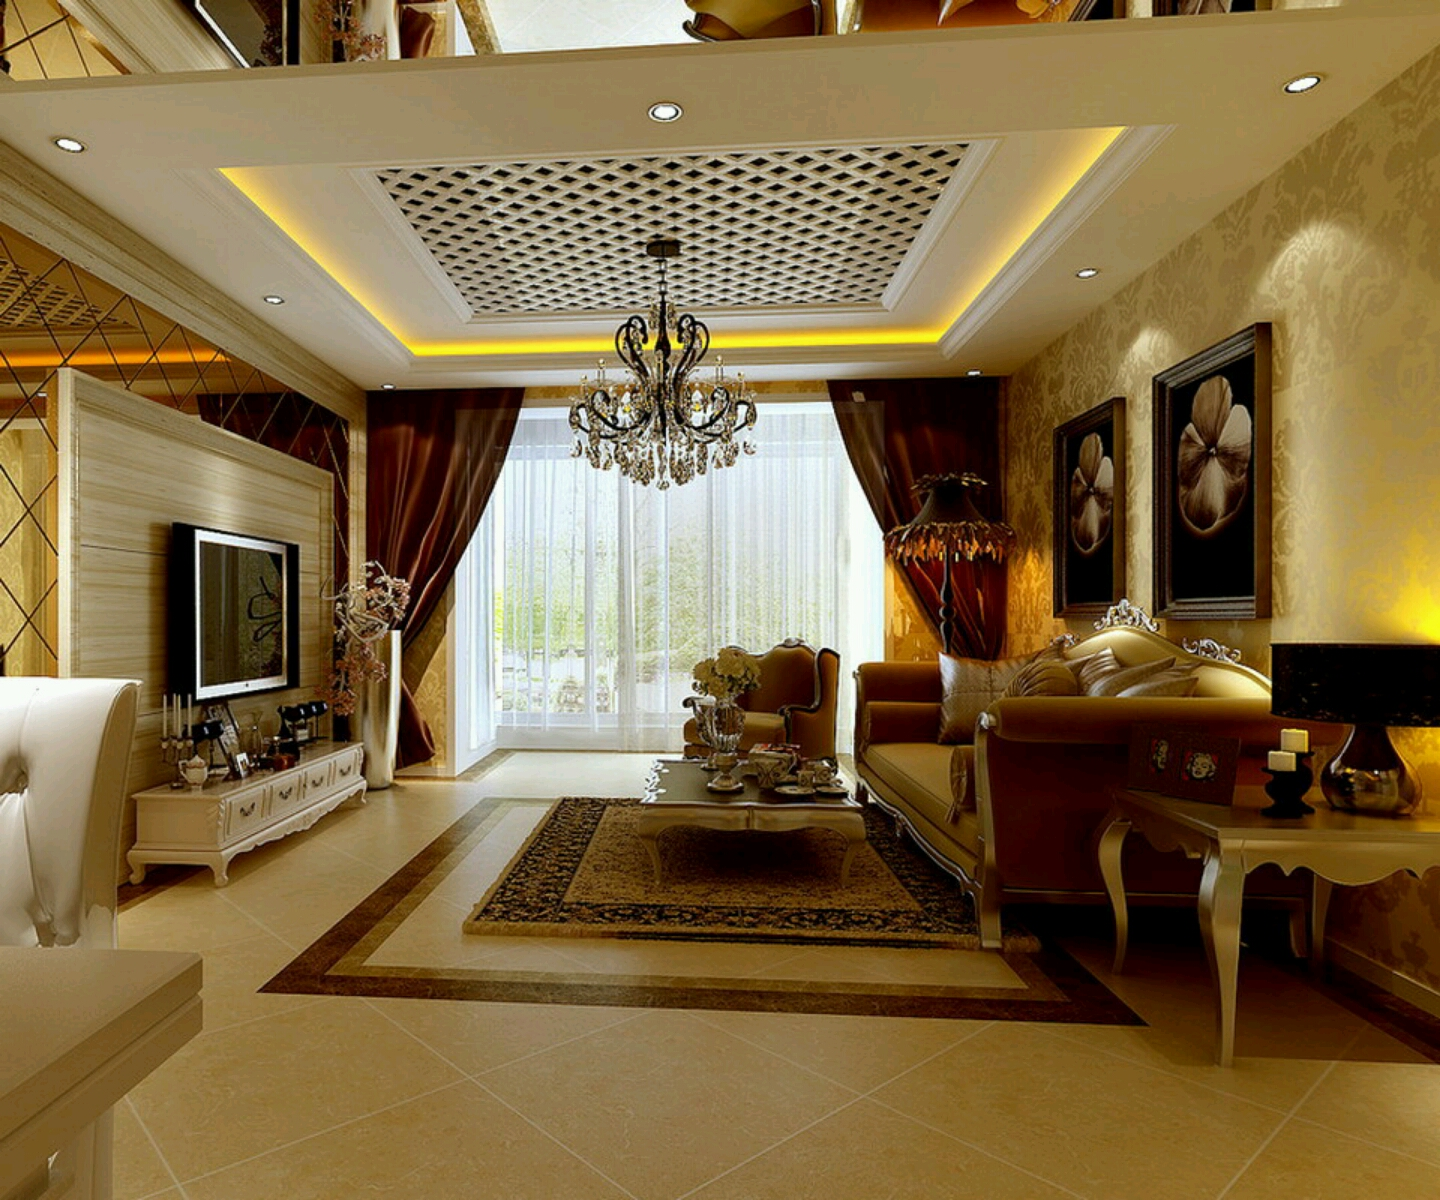 Home Interior Design: Luxury Homes Interior Decoration Living Room Designs Ideas